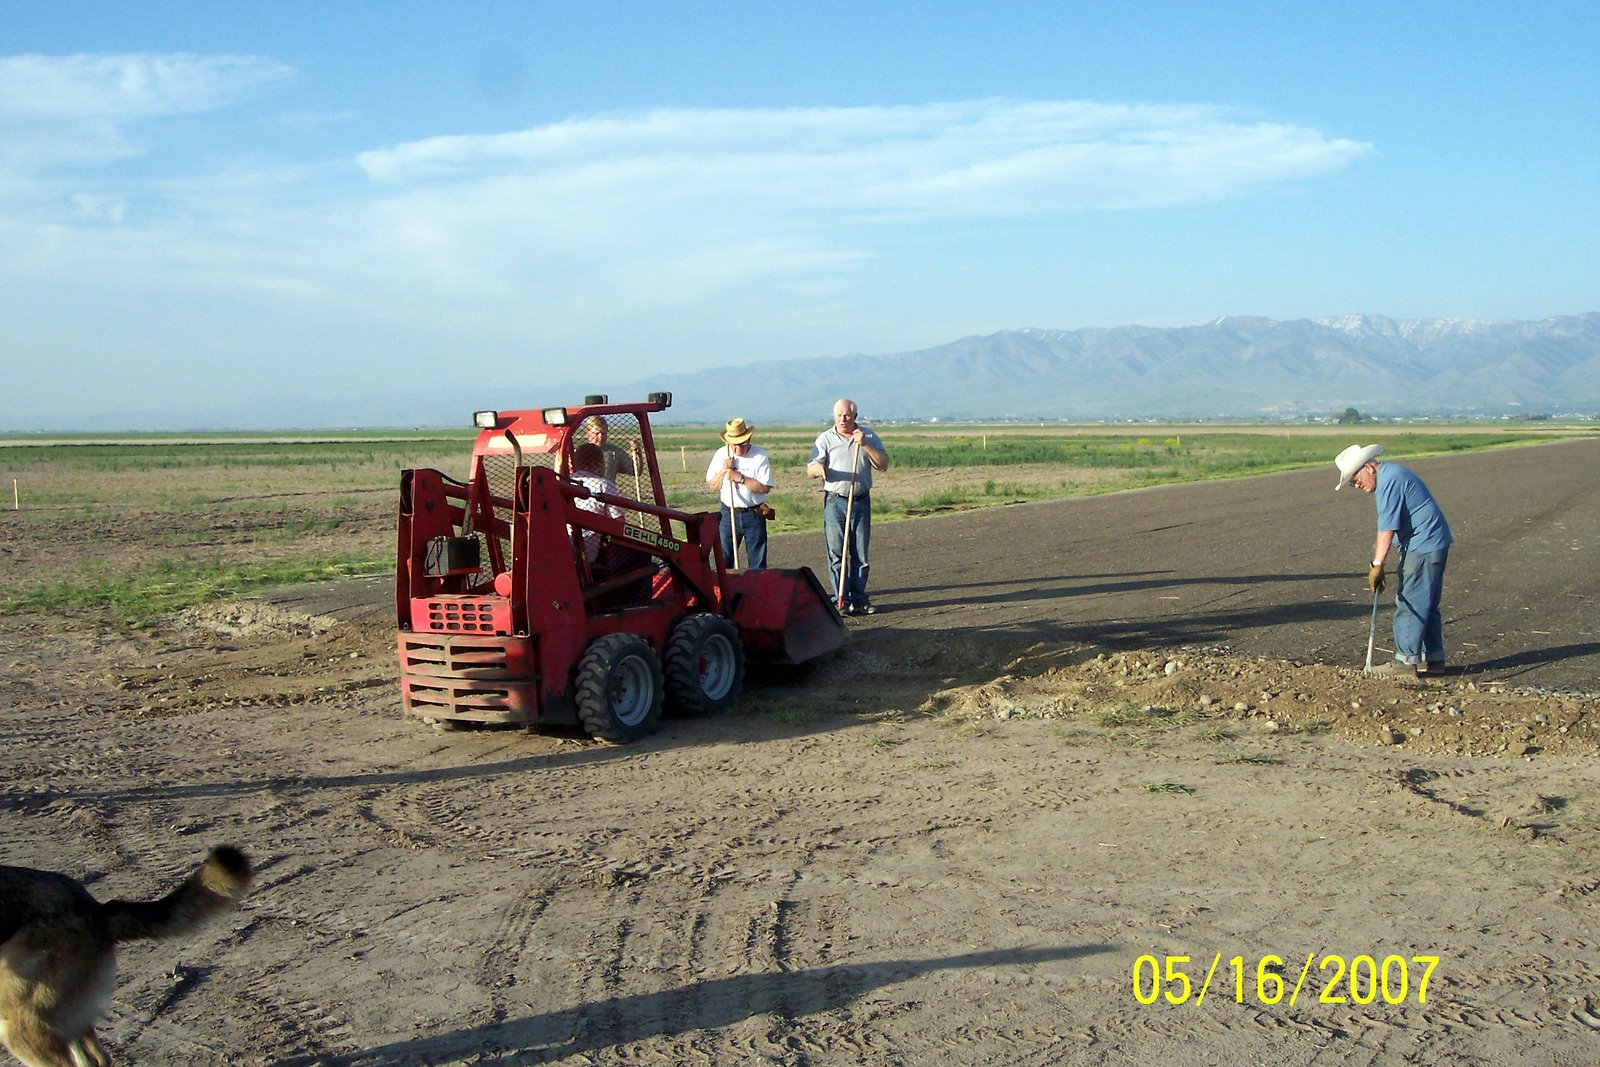 TAPERING THE WEST END OF RUNWAY. KELLY SMITH IN BOBCAT WITH NATE FRIEDLI, VERN SMITH AND WINSTON REESE DOING THE MANUAL LABOR.